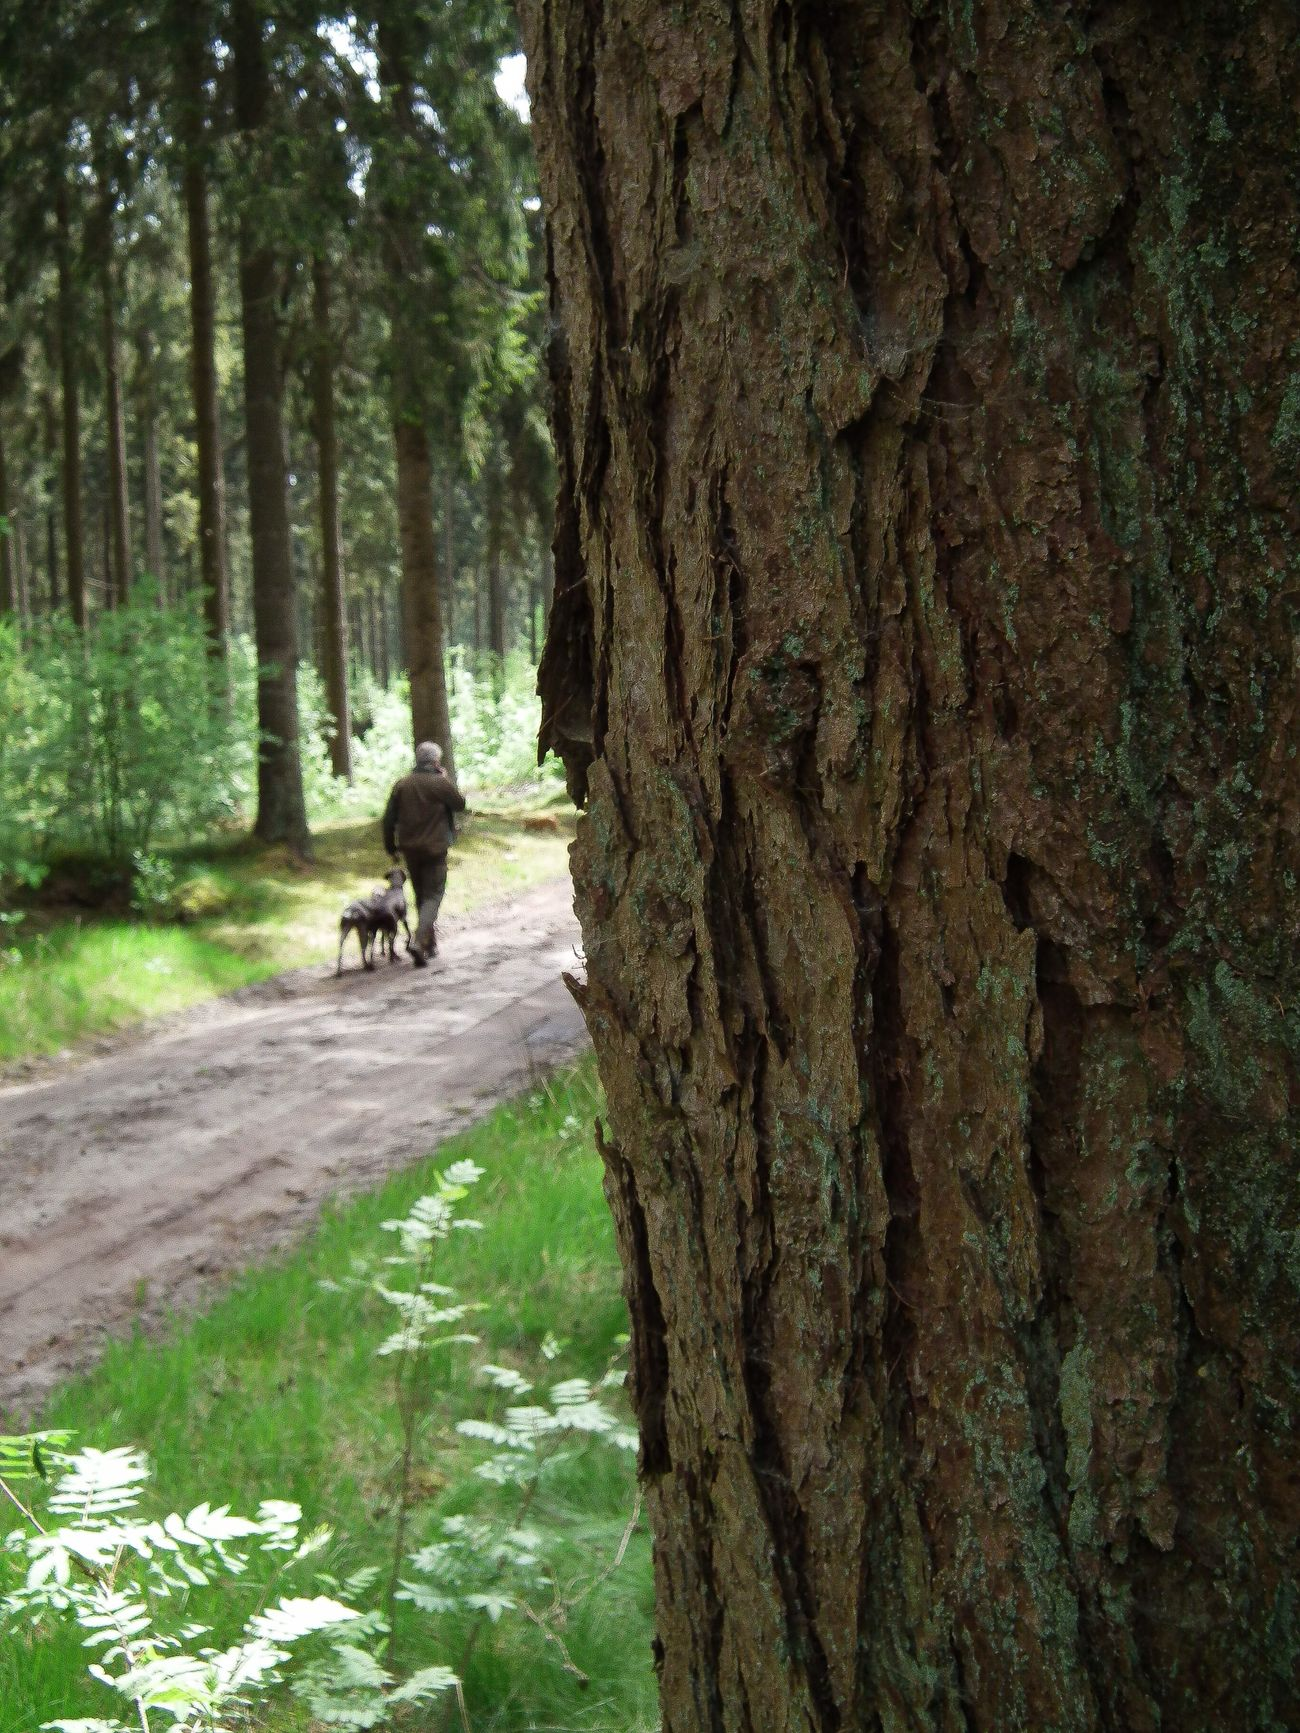 Husband and dogs... Tree Outdoors Forrest Walking Dsk Gsp Huntingdog Birddog Peaceful Silence Nature Nature Photography Holland